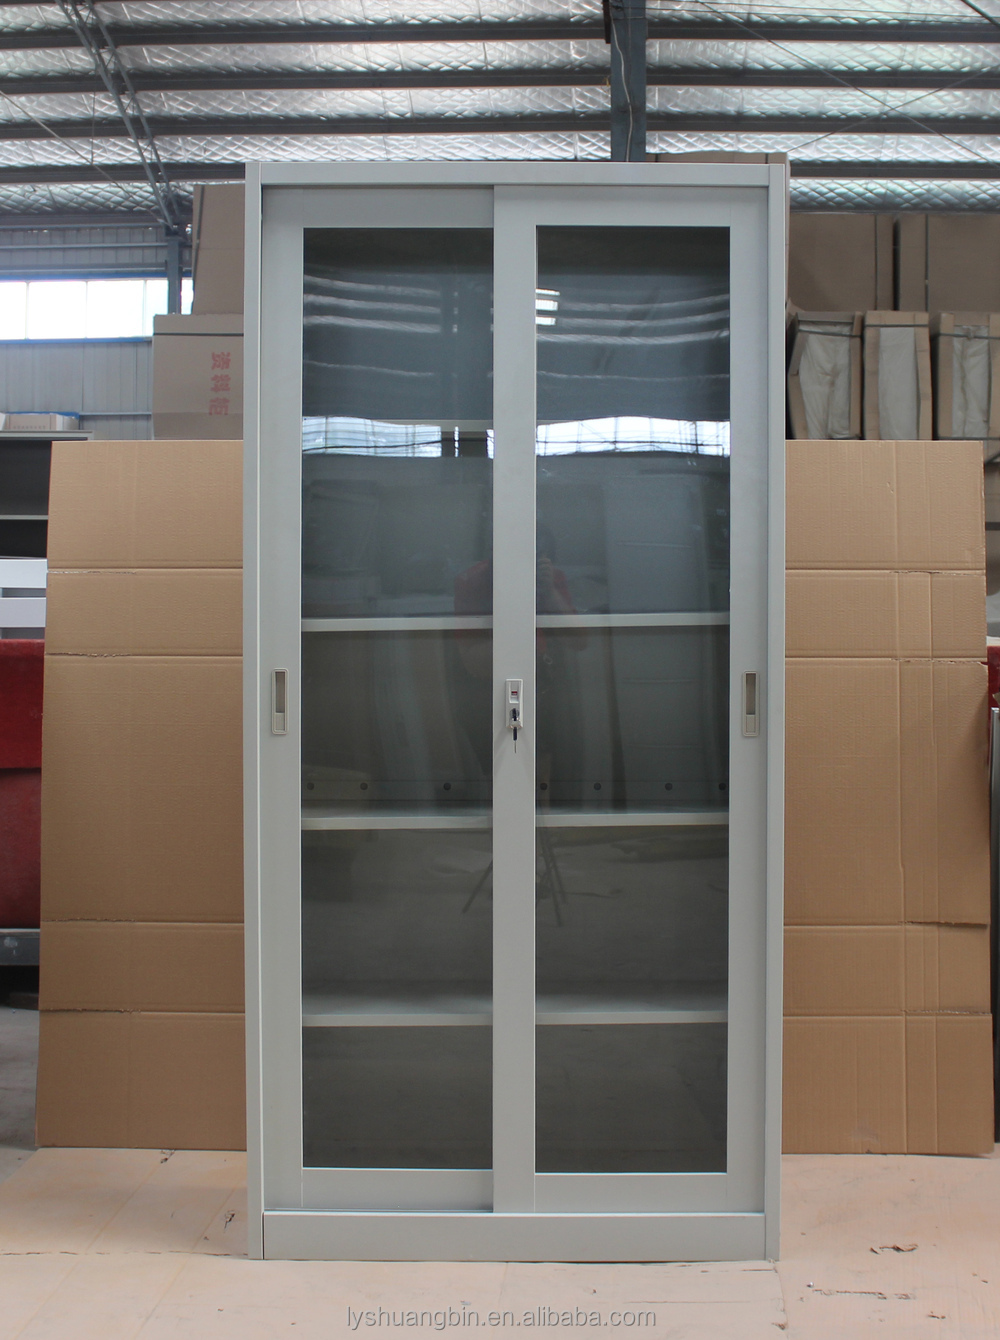 Best office furniture steel file cabinet price glass for Sliding glass doors office